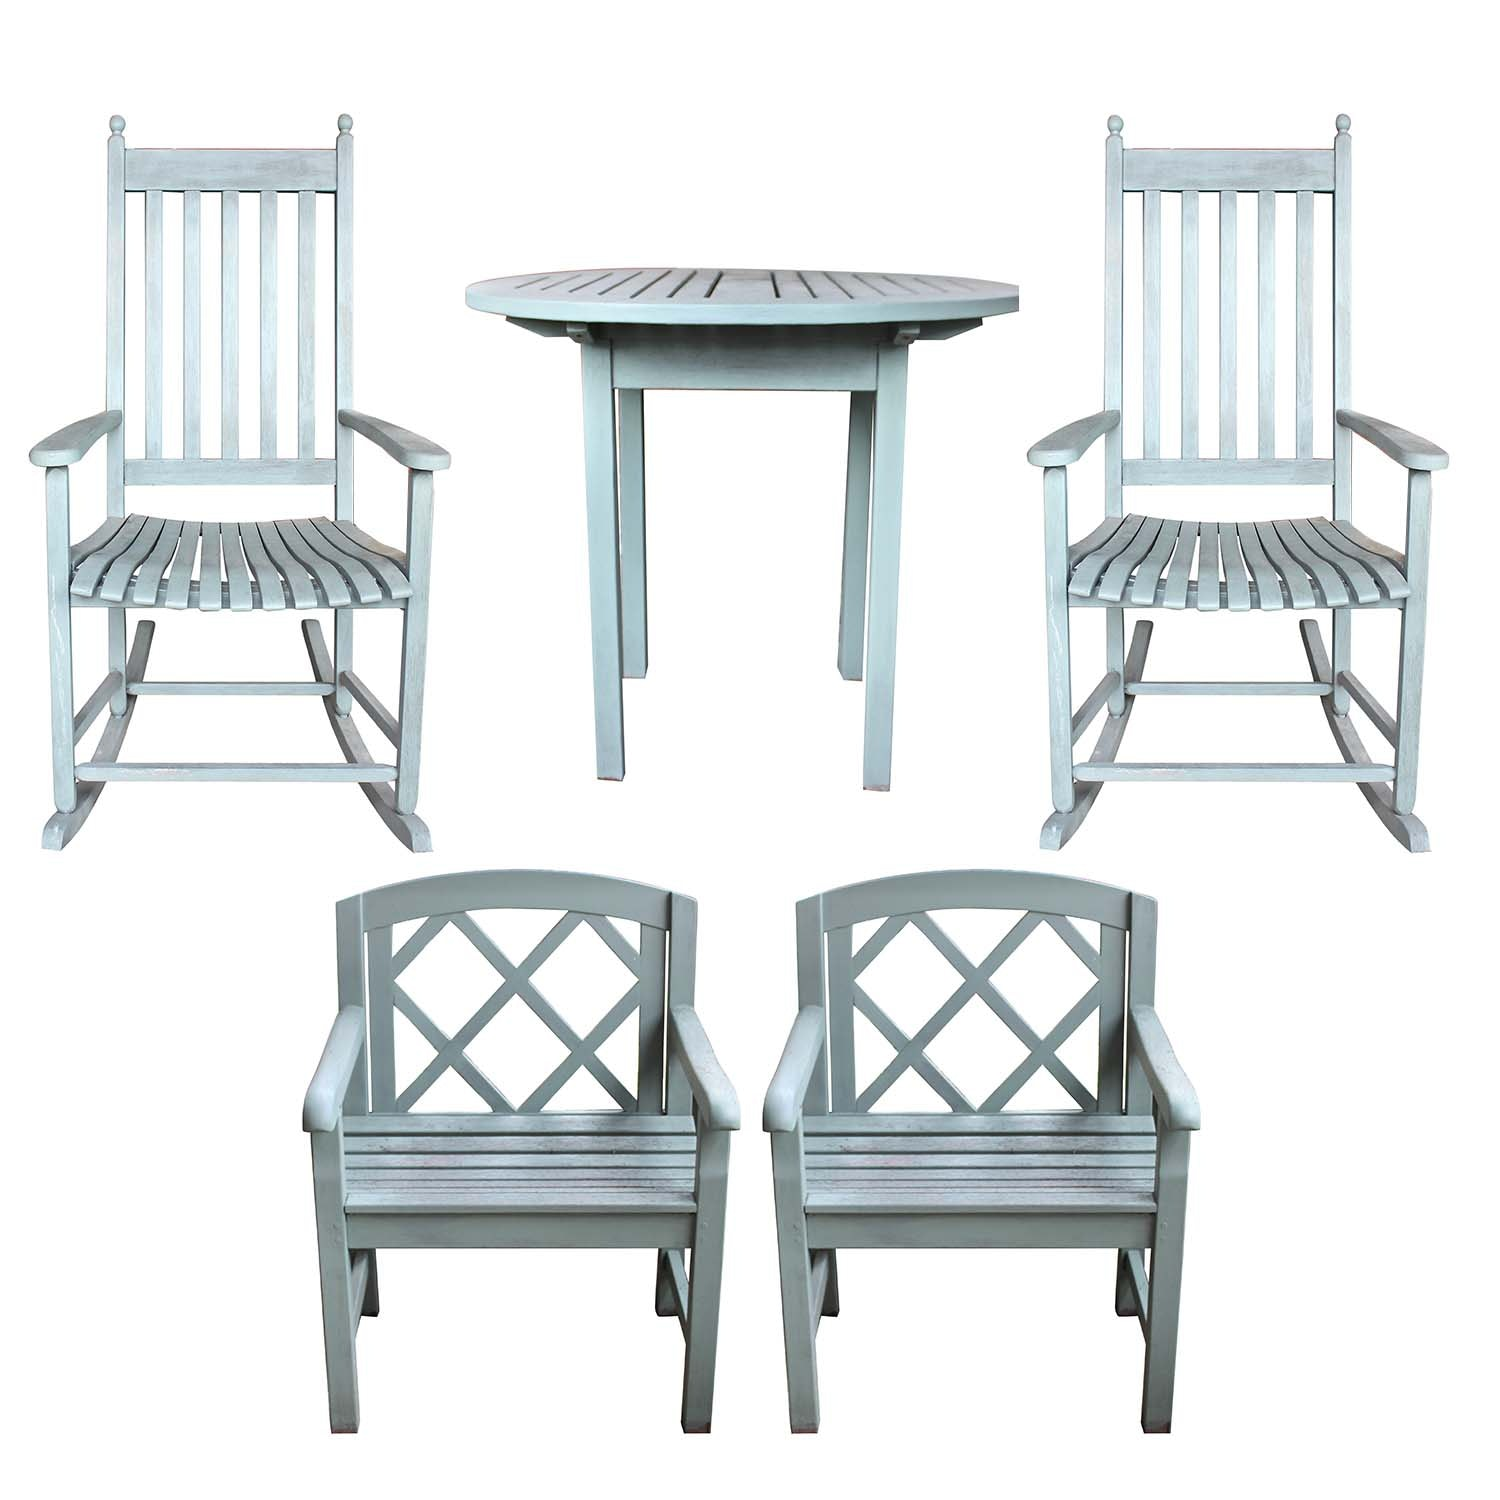 Five Piece Teak Outdoor Furniture Set